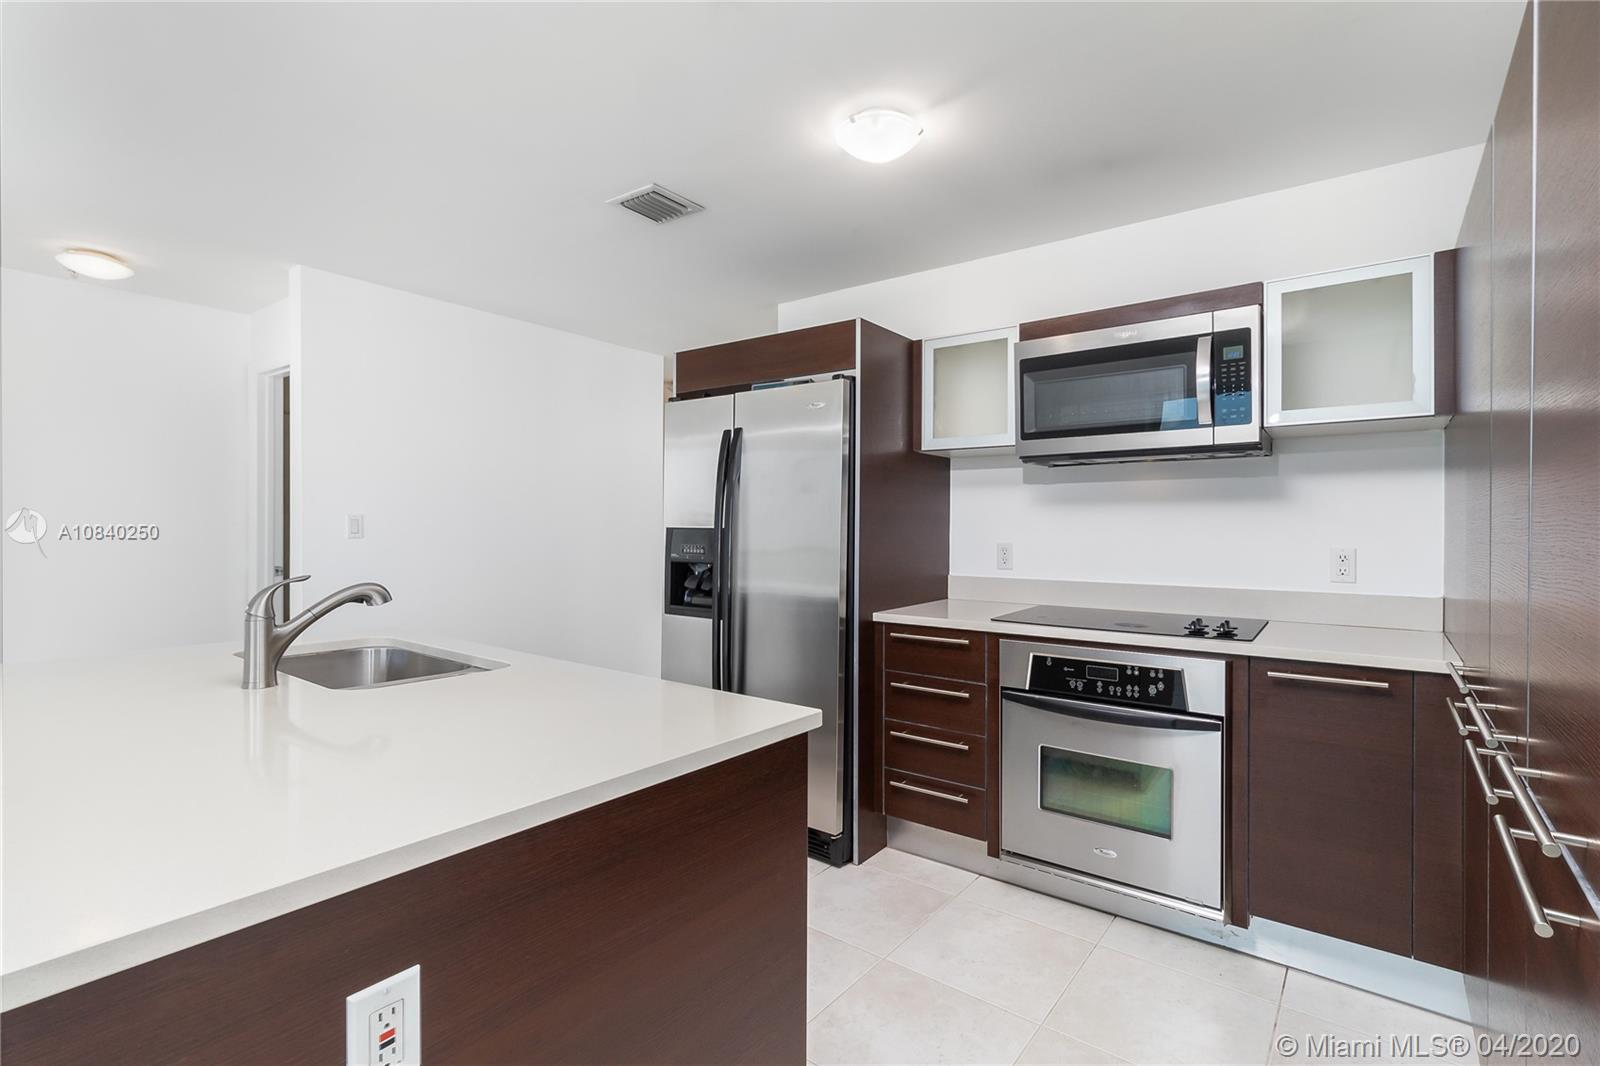 A lovely 2 bed/2 bath corner unit features natural light, gorgeous sunsets and Fantastic Miami skyline views. Enjoy a modern kitchen with island, granite counter tops and stainless steel appliances and wrap around balcony.Building amenities include 2 heated pools, 2 story gym w/ classes available, theater room, business center, 2 lounges/party room, sauna, Jacuzzi, billiard, concierge, 24H security and valet. Minutes from Downtown, the Center for the Arts, Brickell, South Beach and the Design District. Within walking distance of Publix, Parks, American Airlines arena, cafes and restaurants. Call agent for showing instructions. Do not use Show Assist.